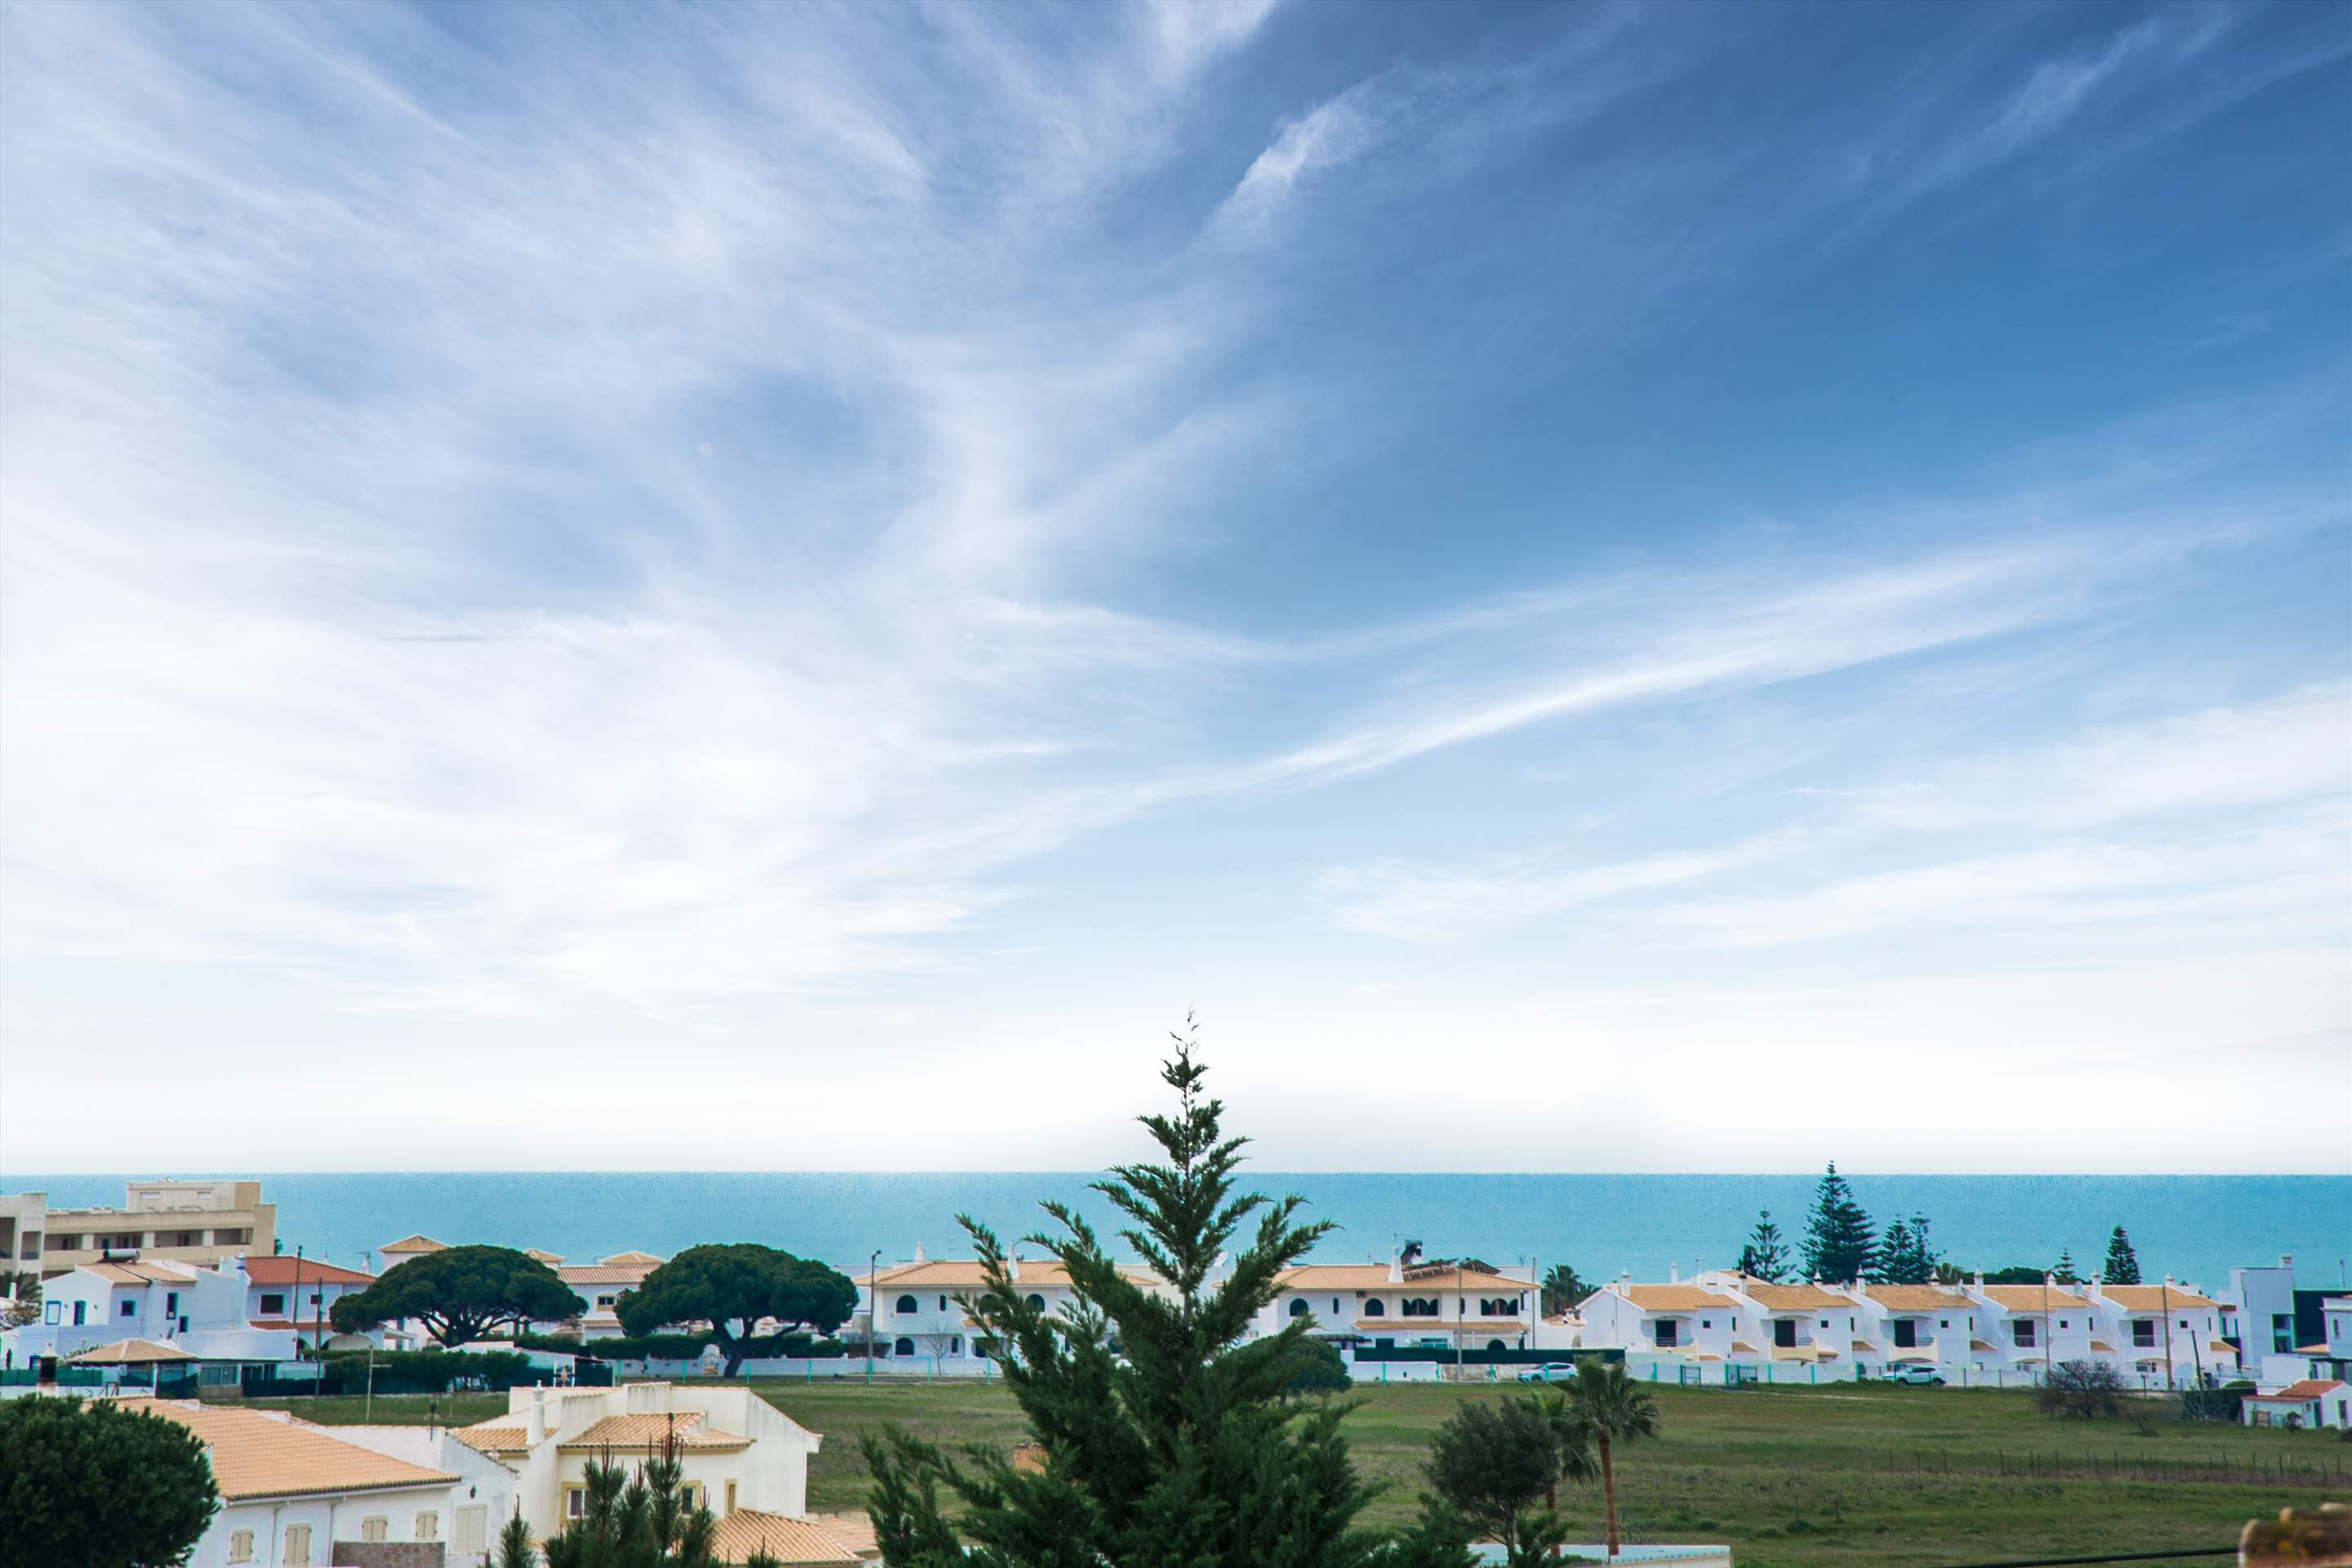 Casa Isabel, 5-6 persons rate, 3 bedroom villa in Gale, Vale da Parra and Guia, Algarve Photo #25